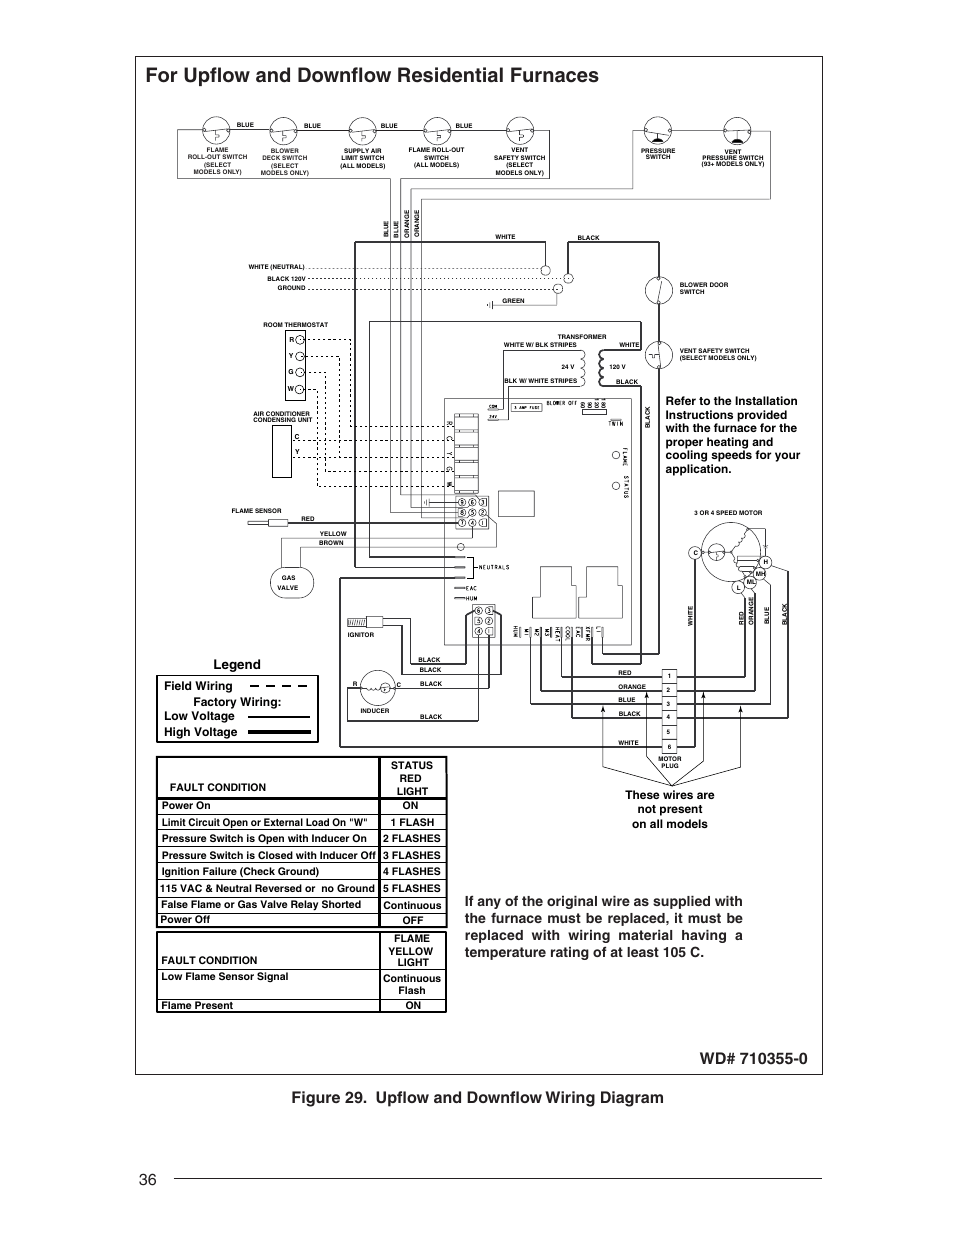 nordyne rl 90 page36?resize\=665%2C861 edenpure 1000 wiring diagram edenpure gen 3 wiring diagram, 1000 edenpure 1000xl wiring diagram at edmiracle.co